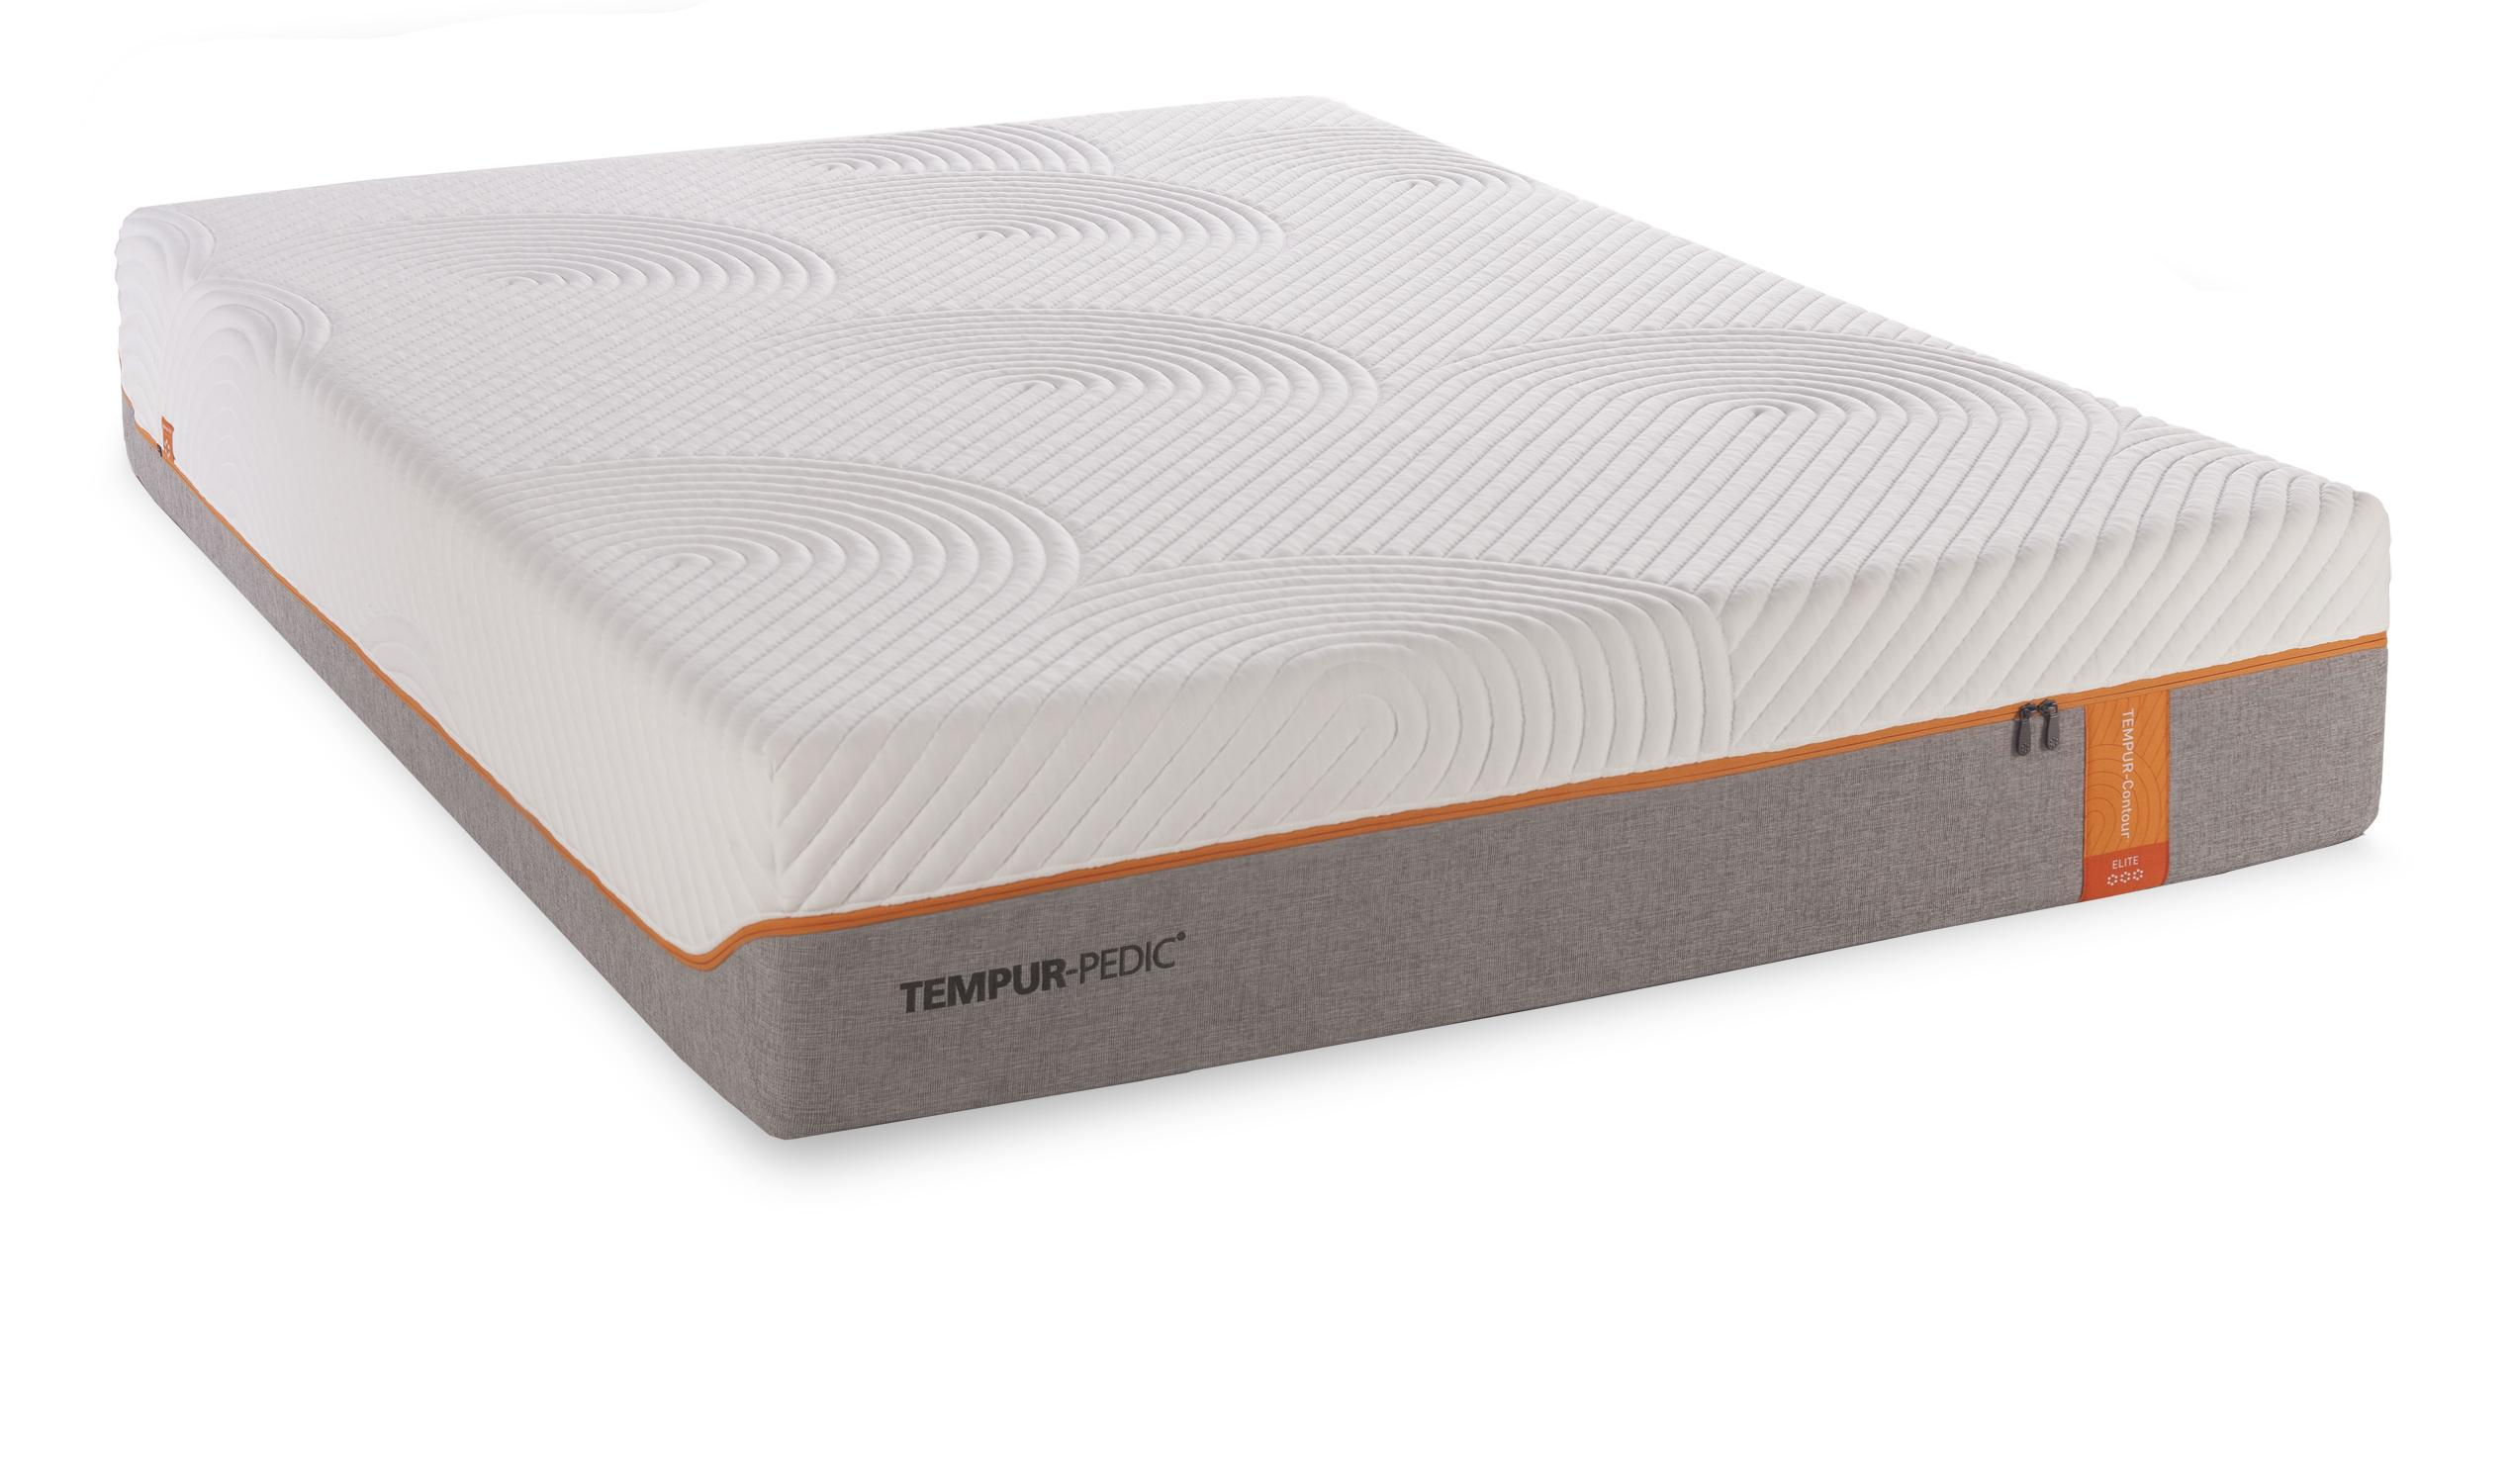 Tempur-Pedic® TEMPUR-Contour Elite King Medium-Firm Mattress - Item Number: 10257170